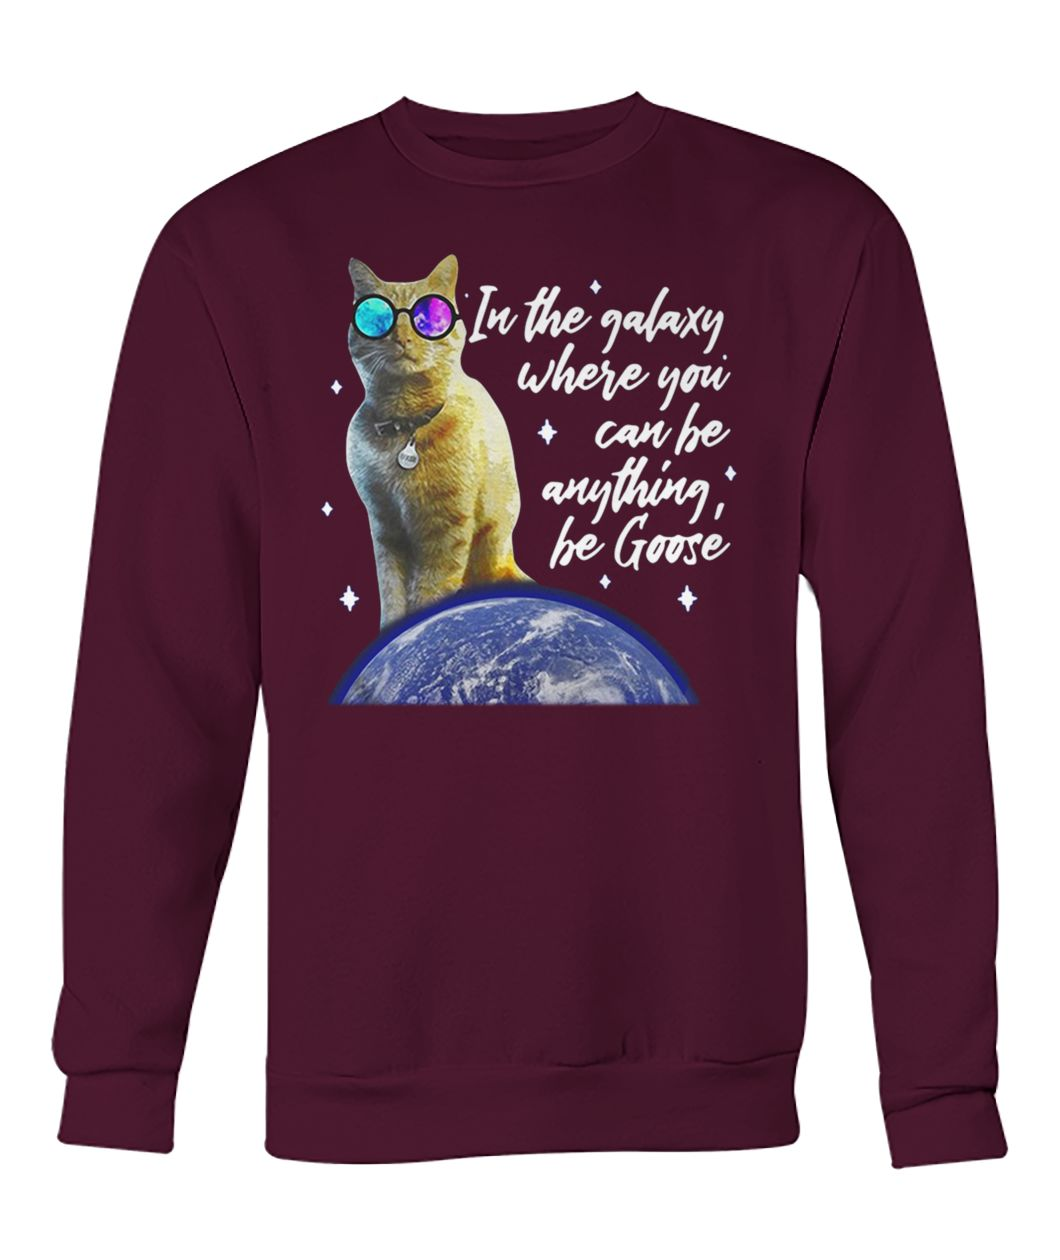 Captain marvel goose the cat in a galaxy where you can be anything be goose crew neck sweatshirt